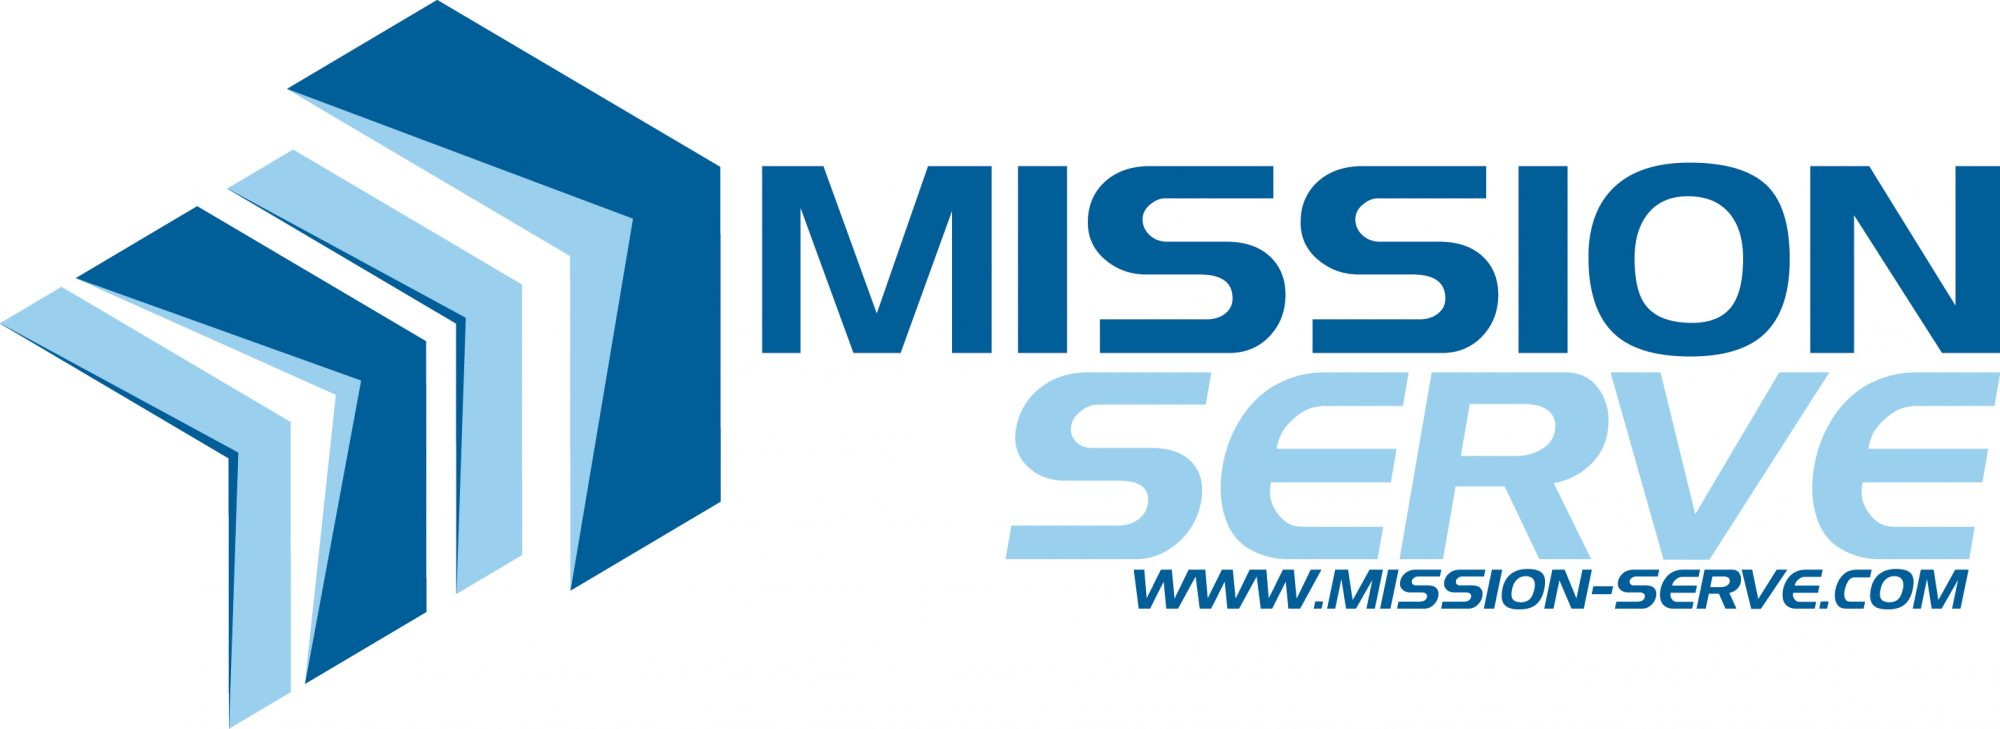 MISSION SERVE LOGO